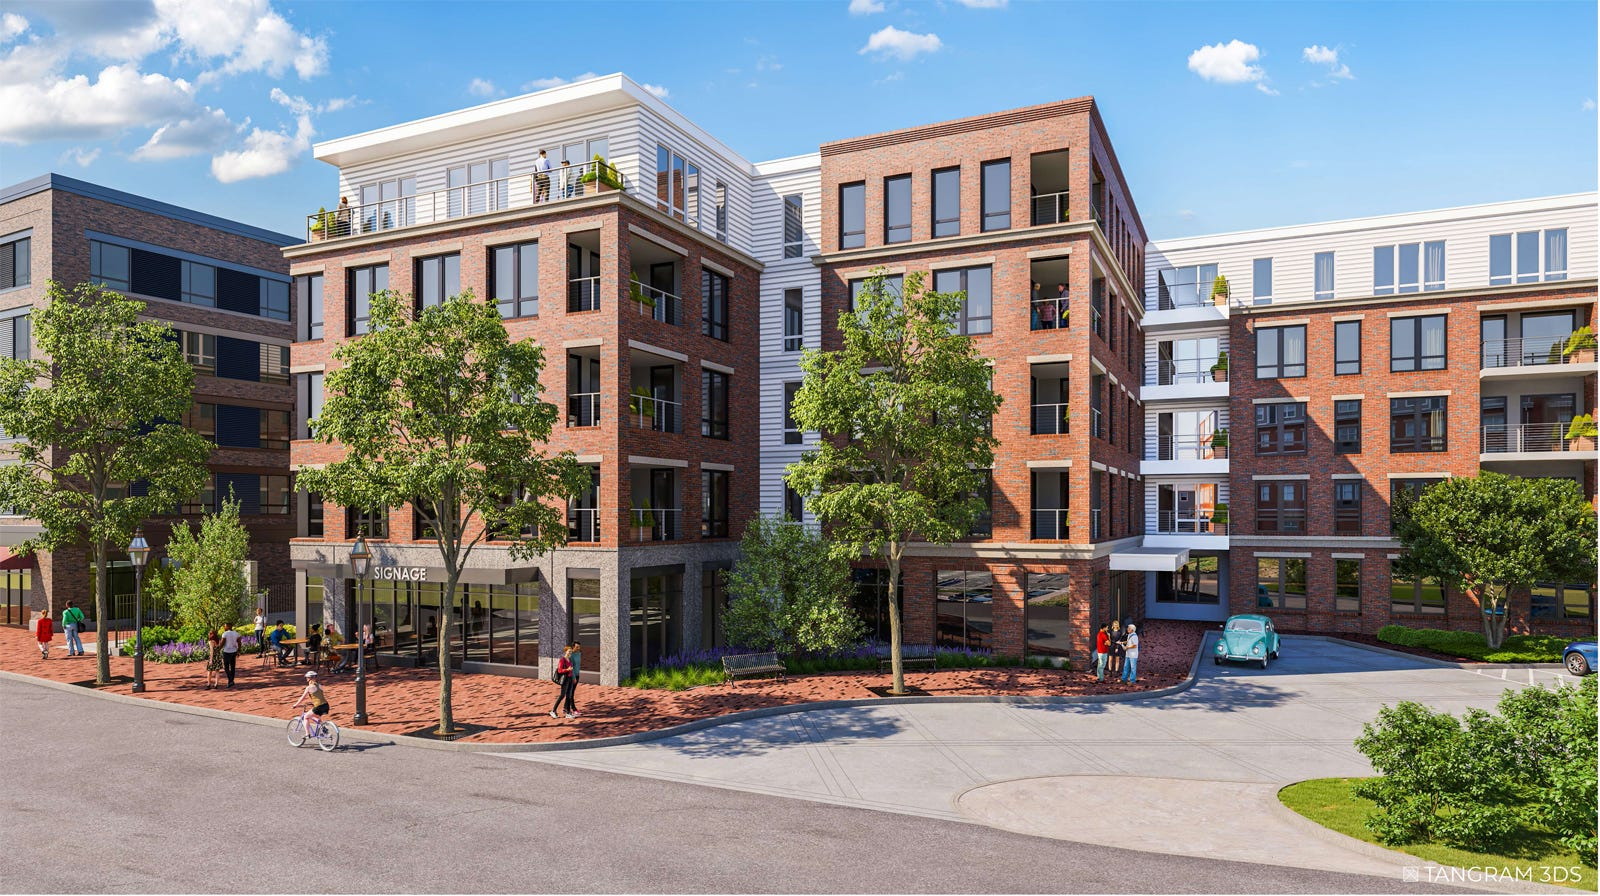 The proposed development at 53 Green St. in Portsmouth.